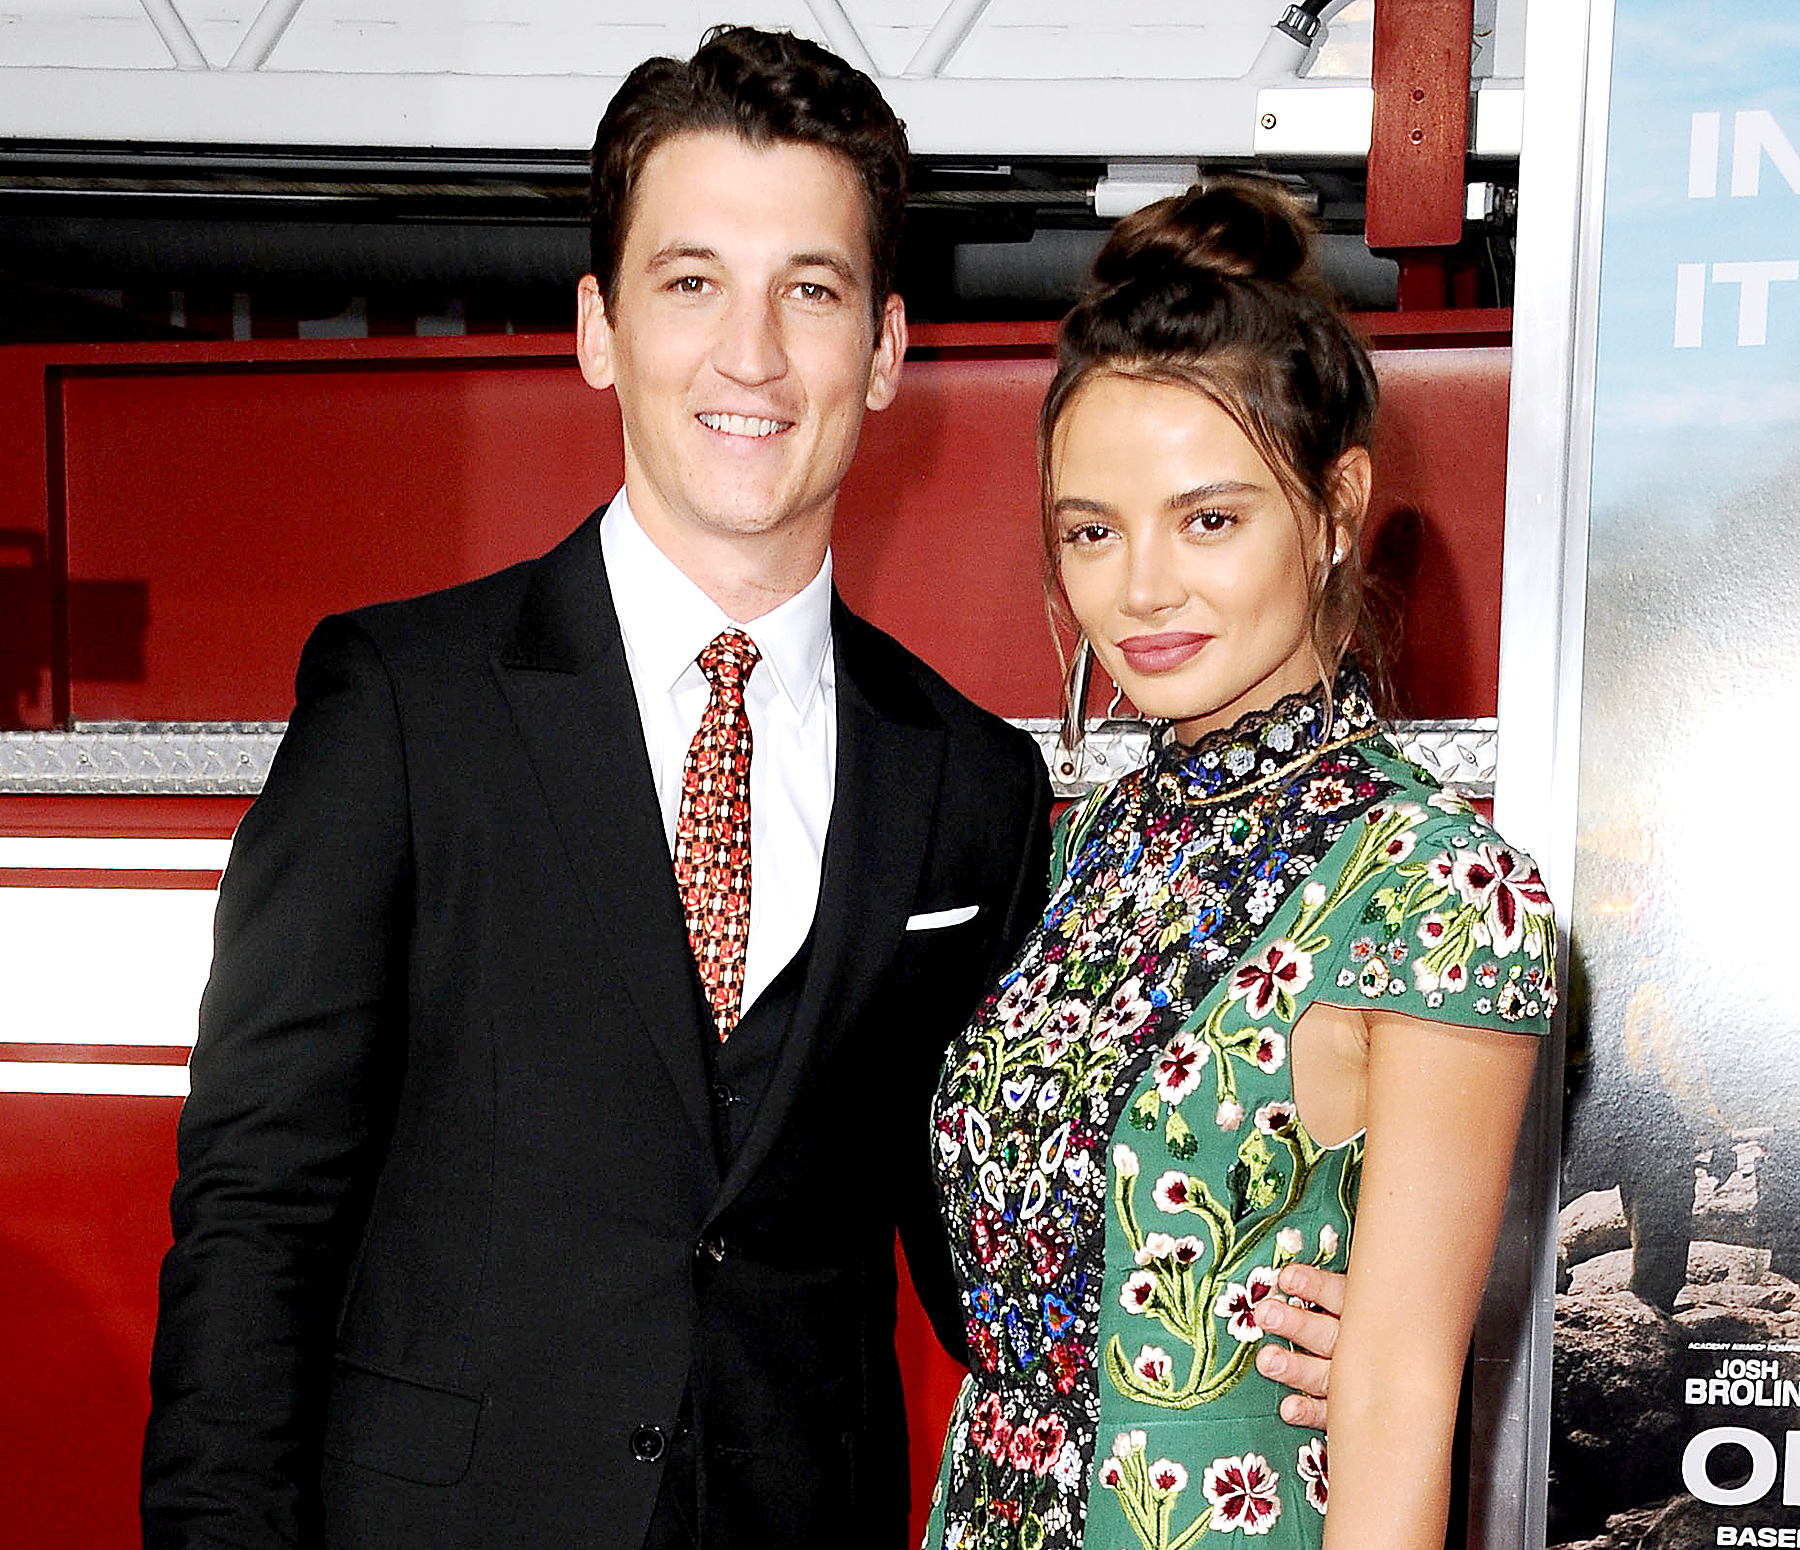 """Miles Teller and Keleigh Sperry attend the premiere of """"Only the Brave"""" at Regency Village Theatre on October 8, 2017 in Westwood, California."""